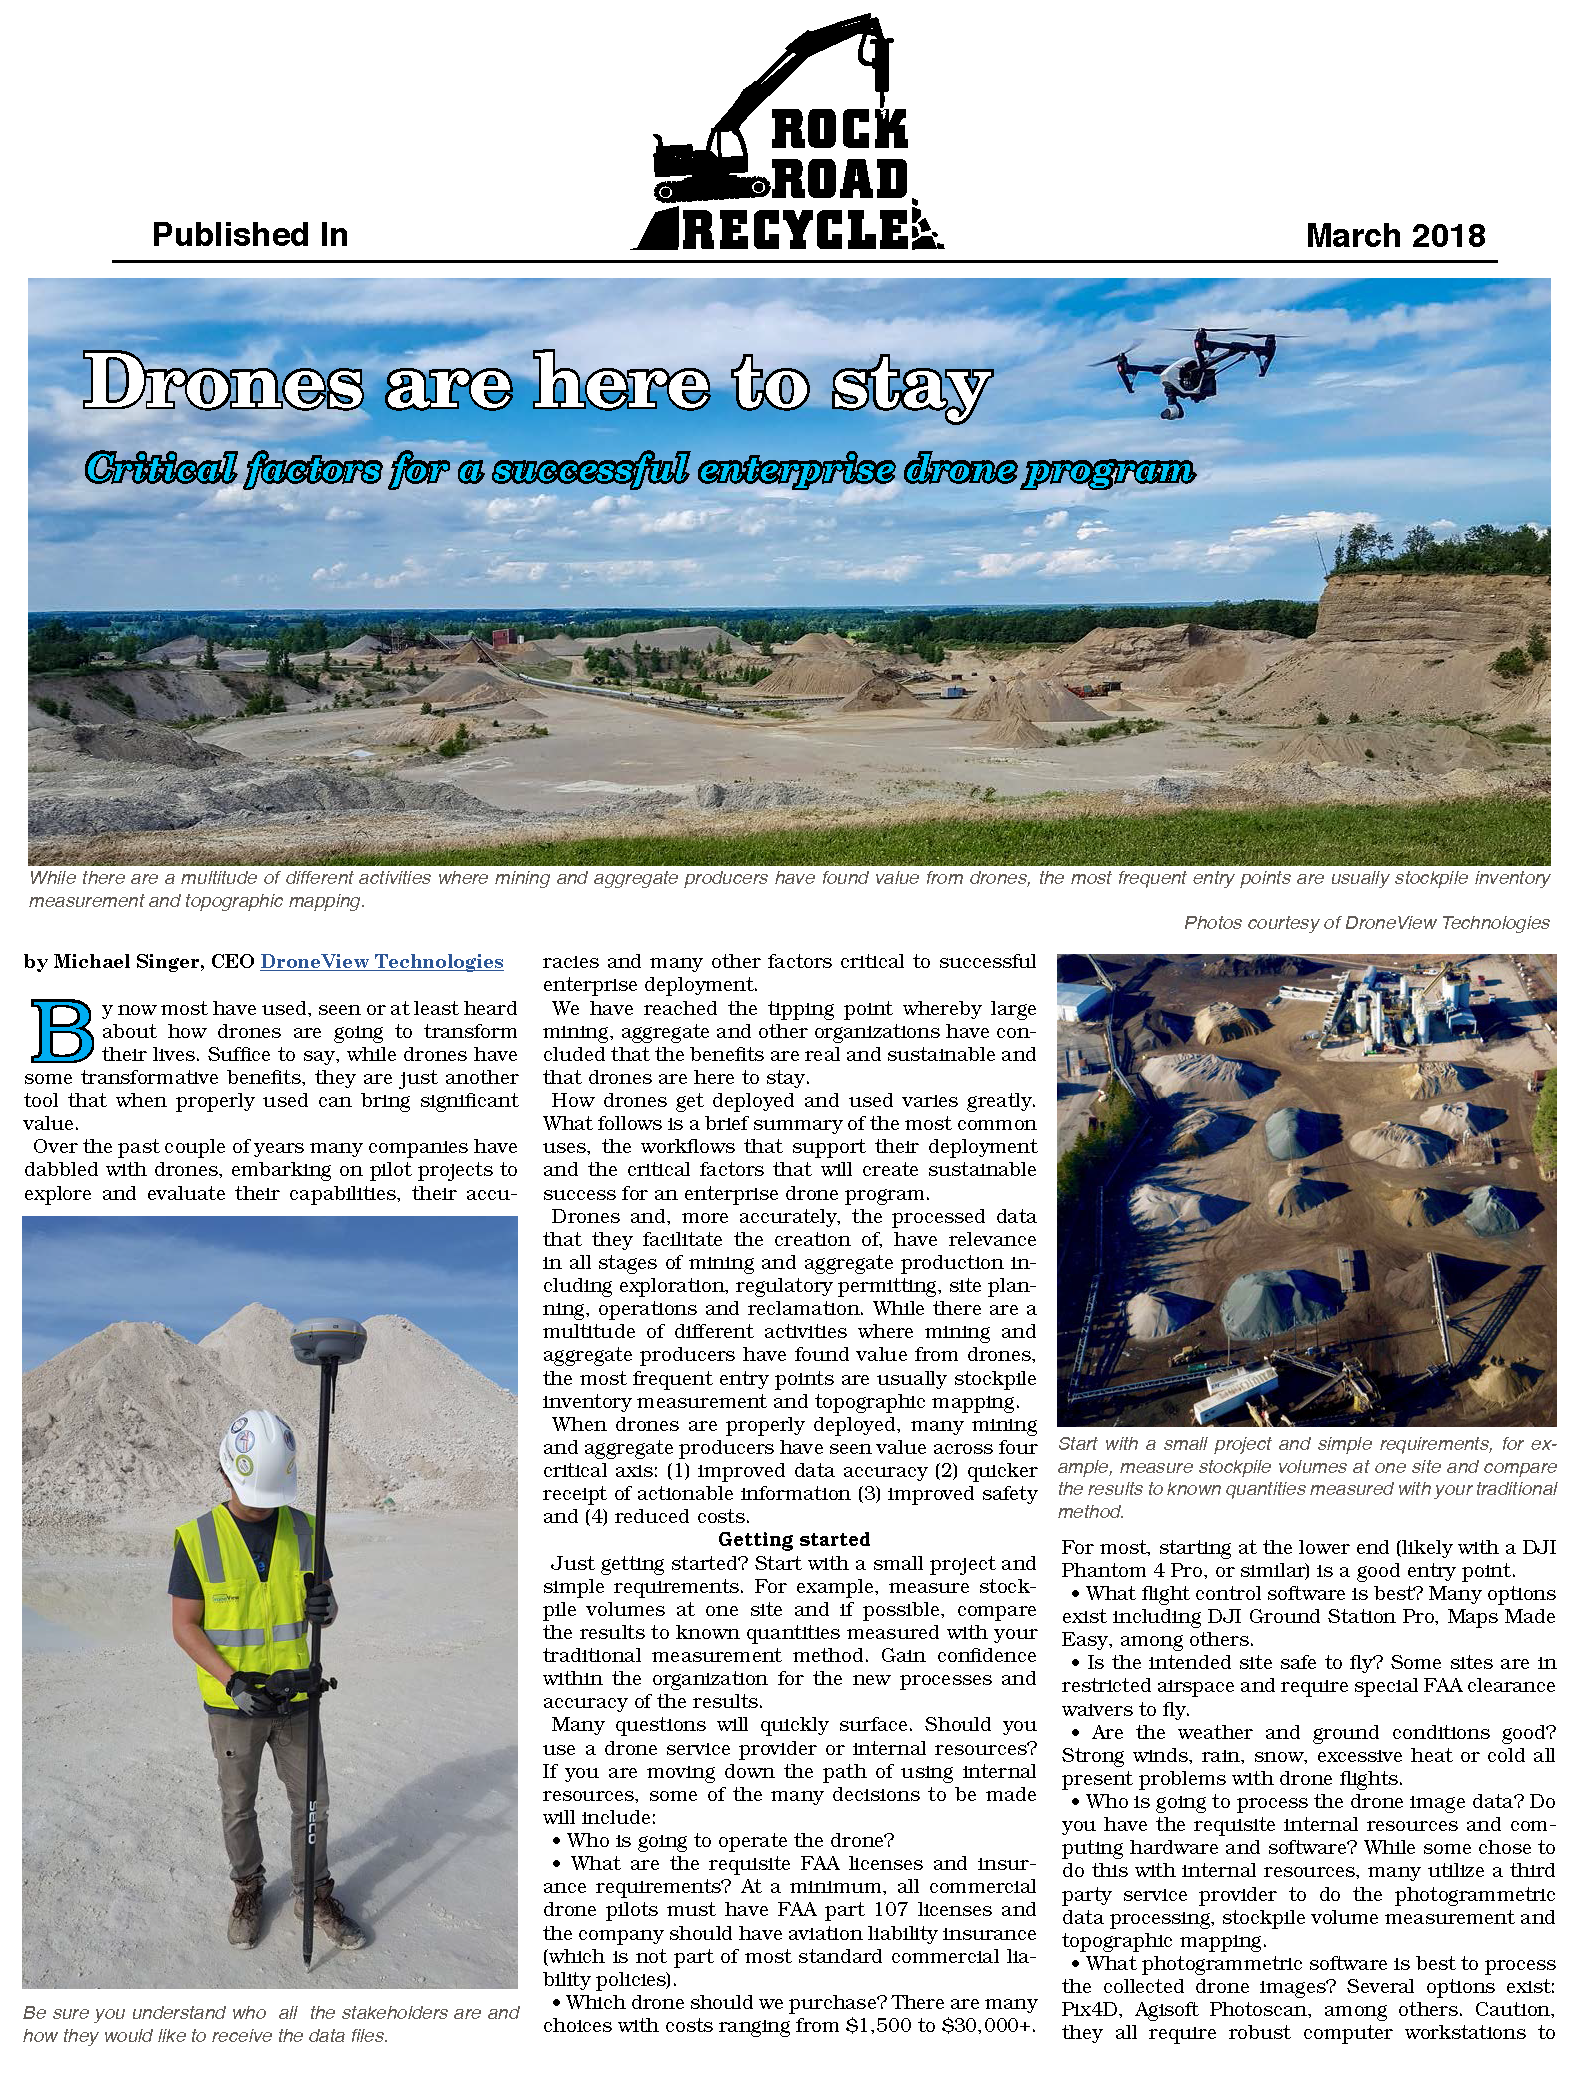 Road Rock Recycle - March 2018_Page_1.png